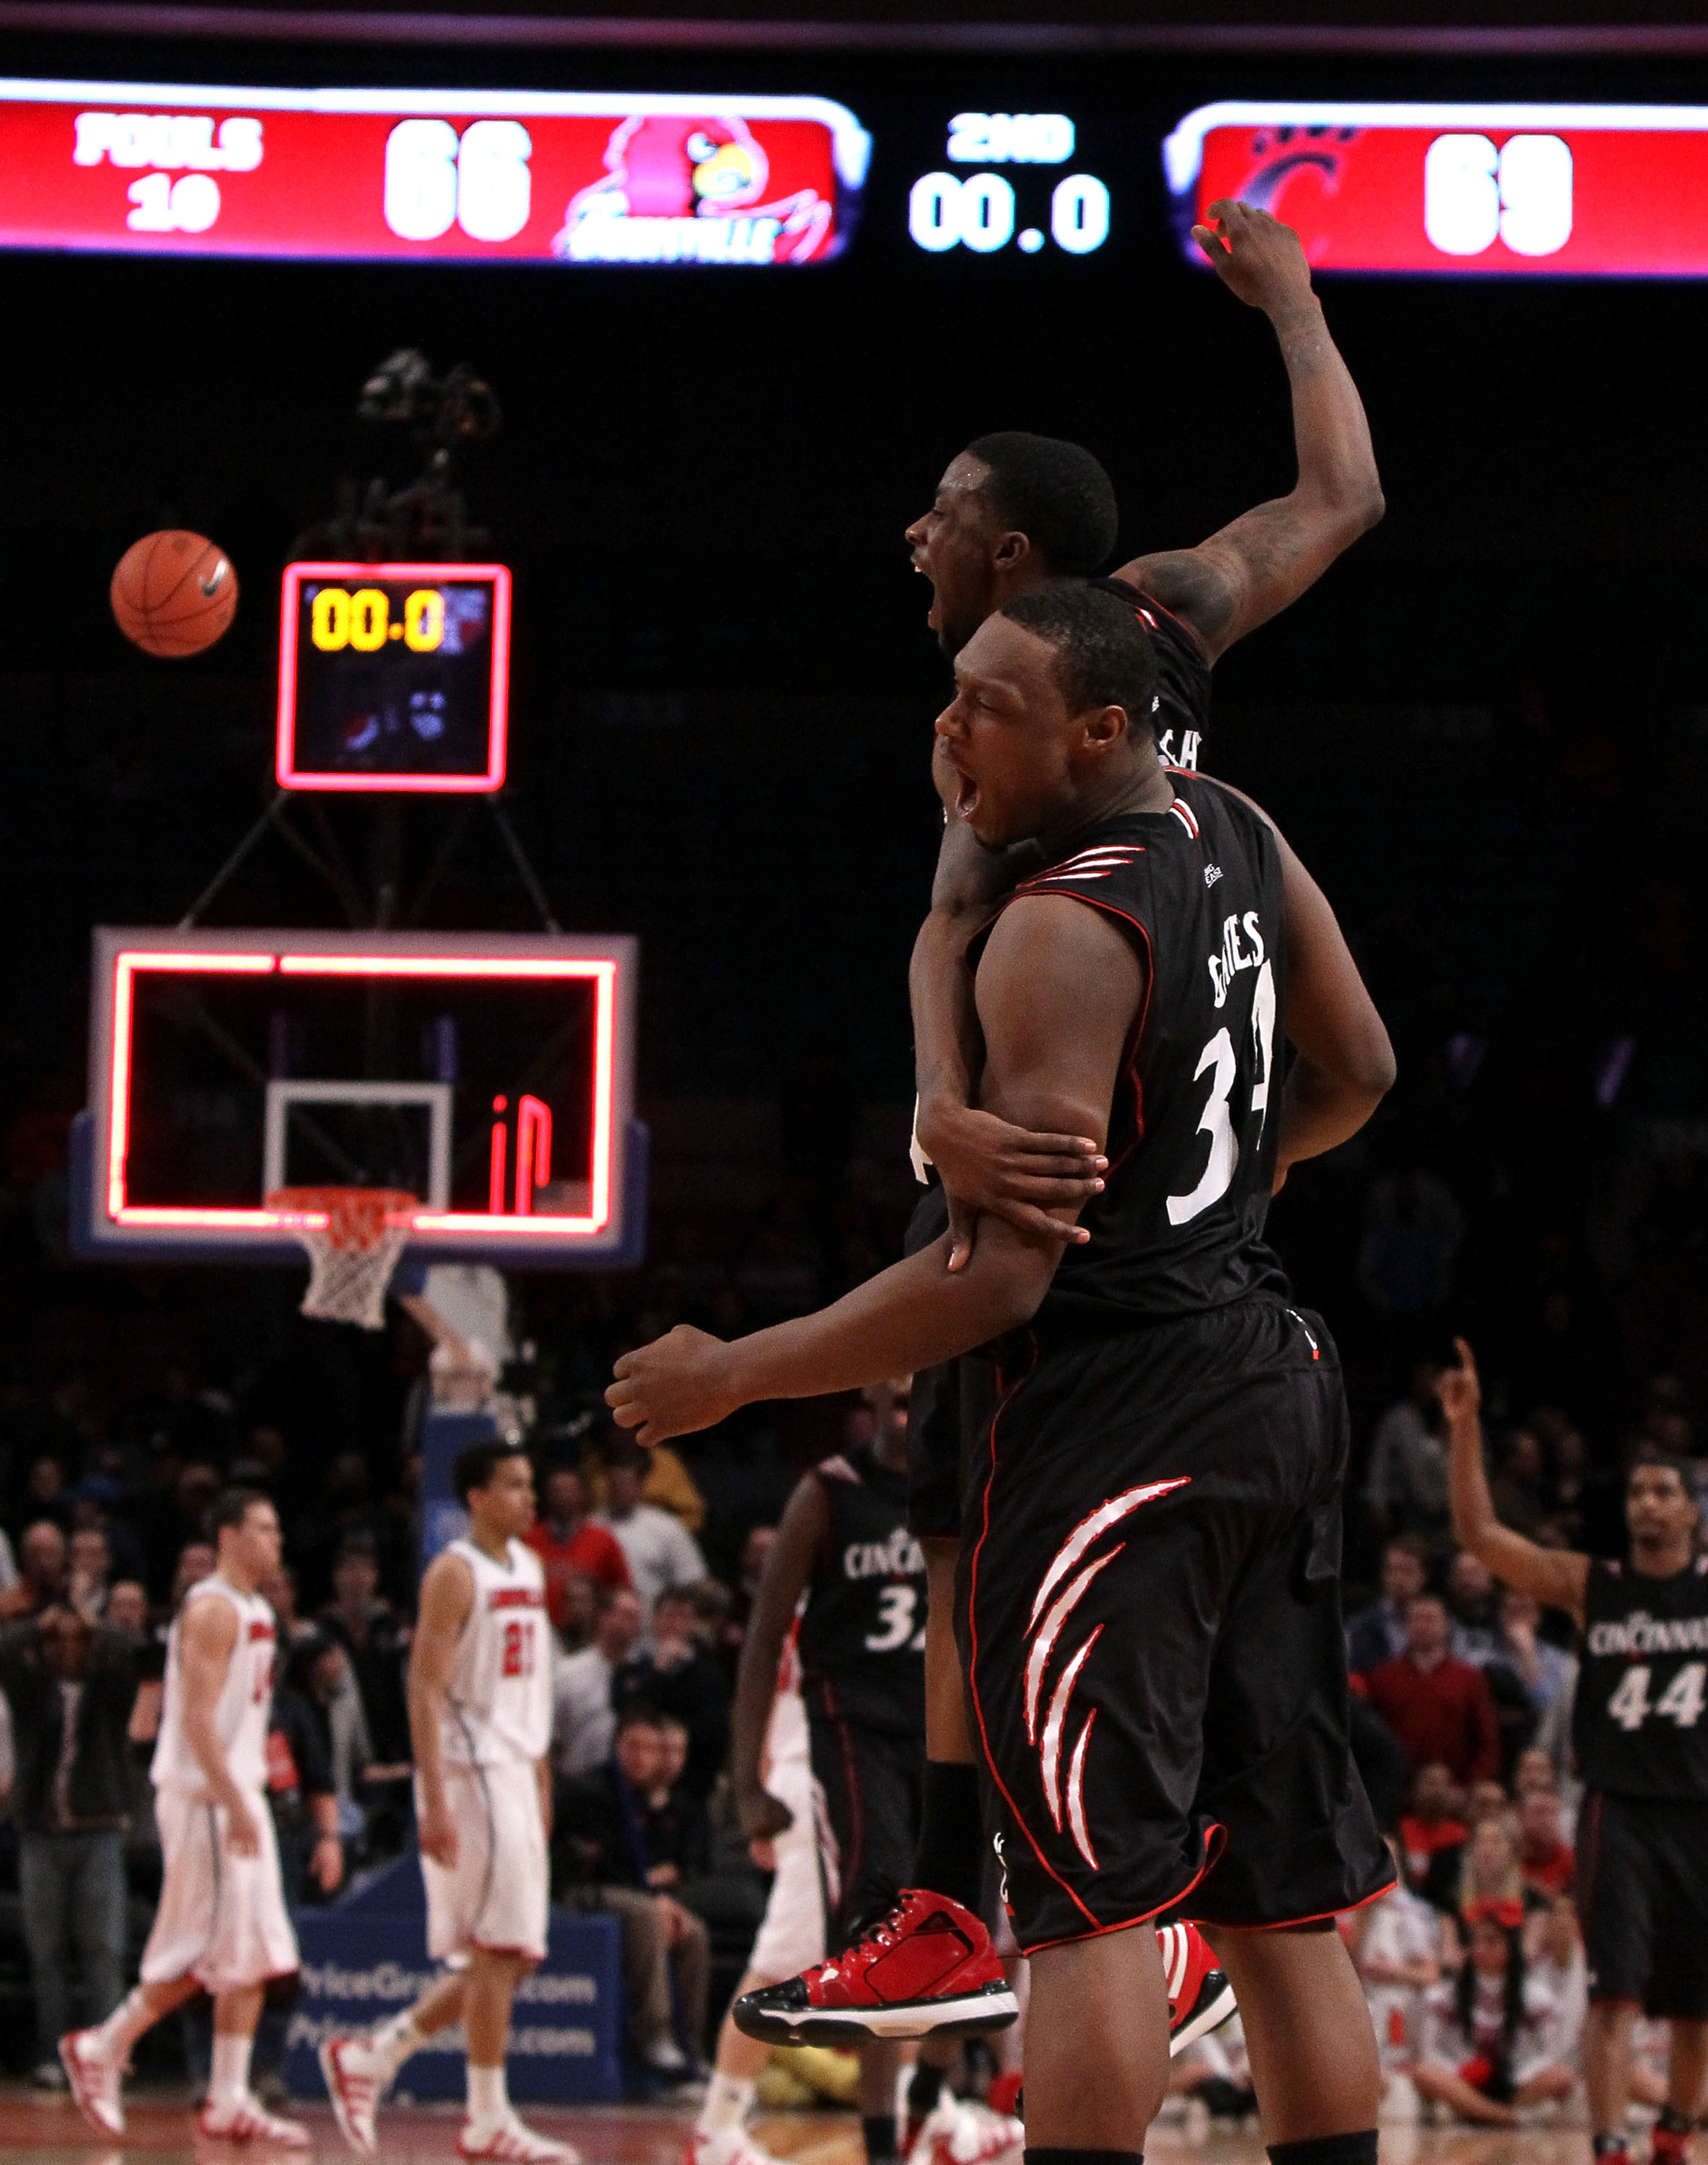 NEW YORK - MARCH 10:  Cashmere Wright #1 and Yancy Gates #34 of the Cincinnati Bearcats celebrate after defeating the Louisville Cardinals during the second round of 2010 NCAA Big East Tournament at Madison Square Garden on March 10, 2010 in New York City